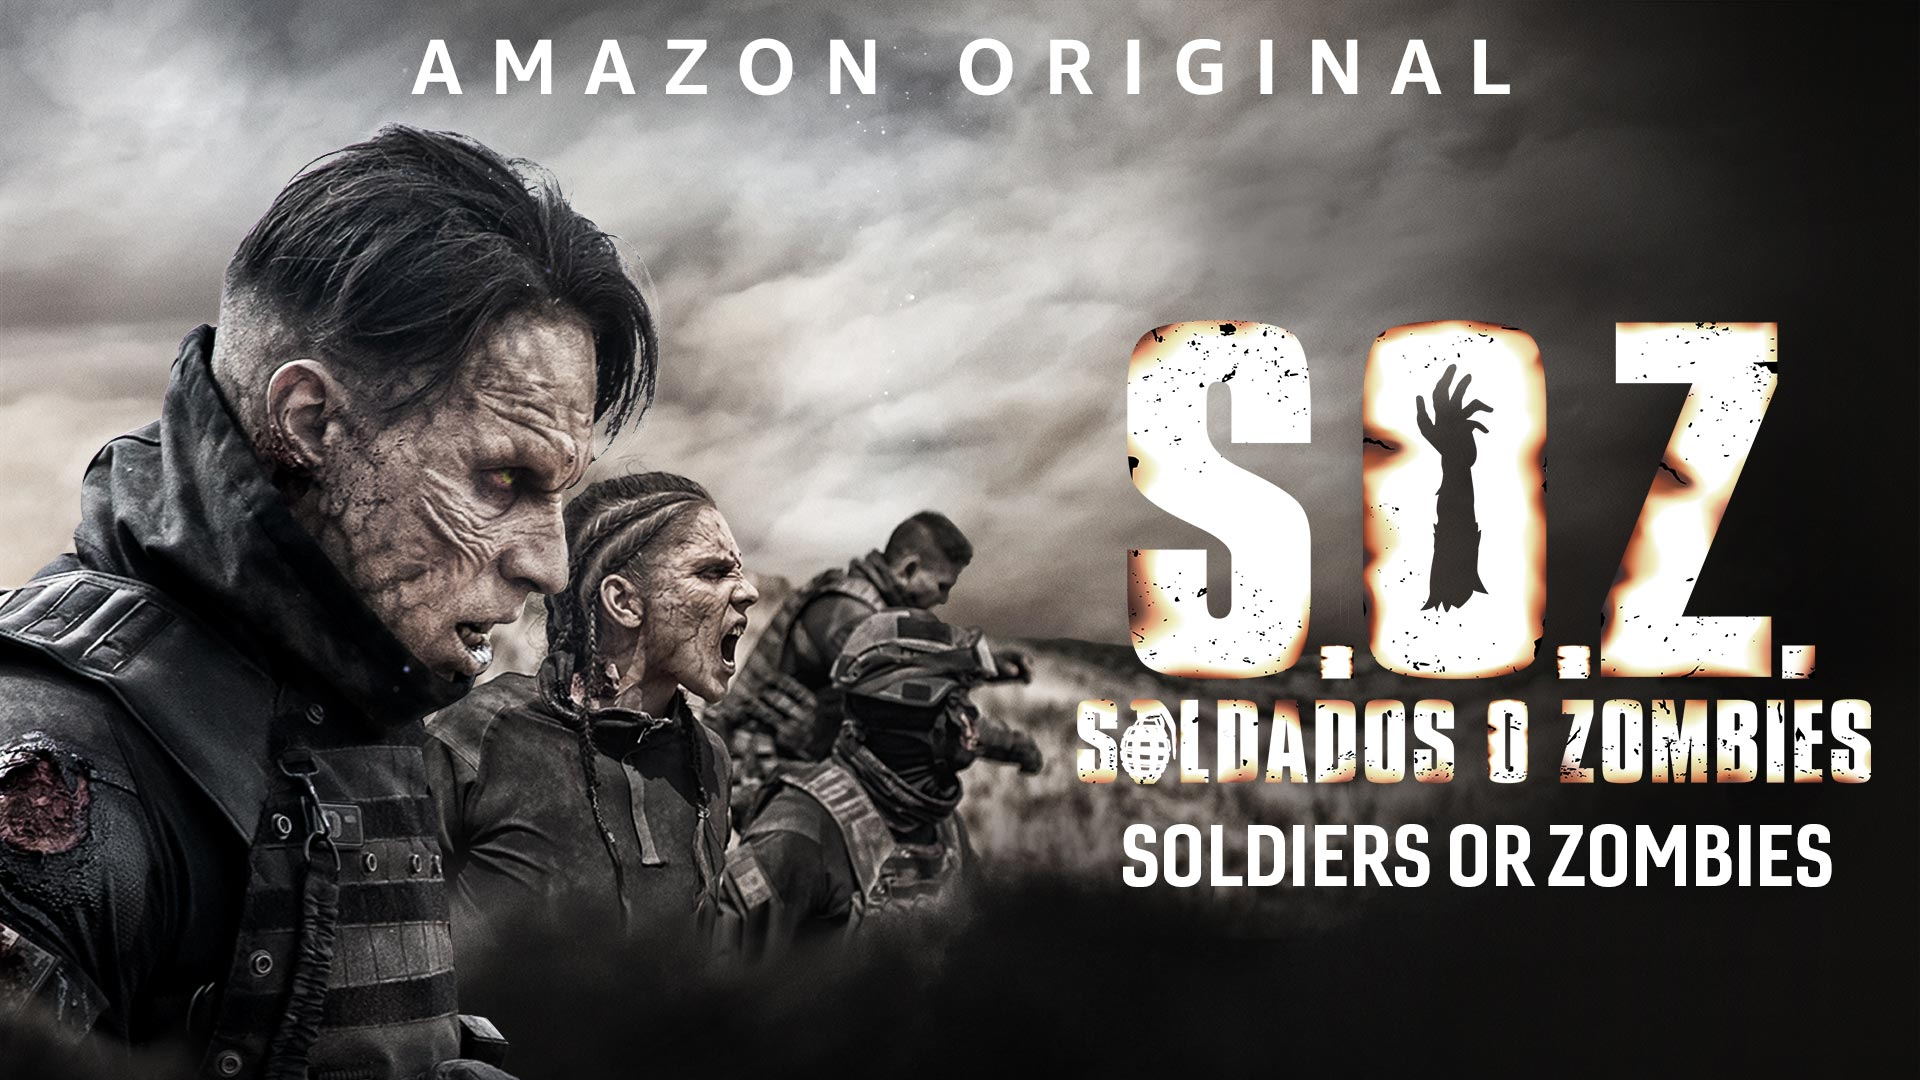 S.O.Z: Soldiers or Zombies - Season 1